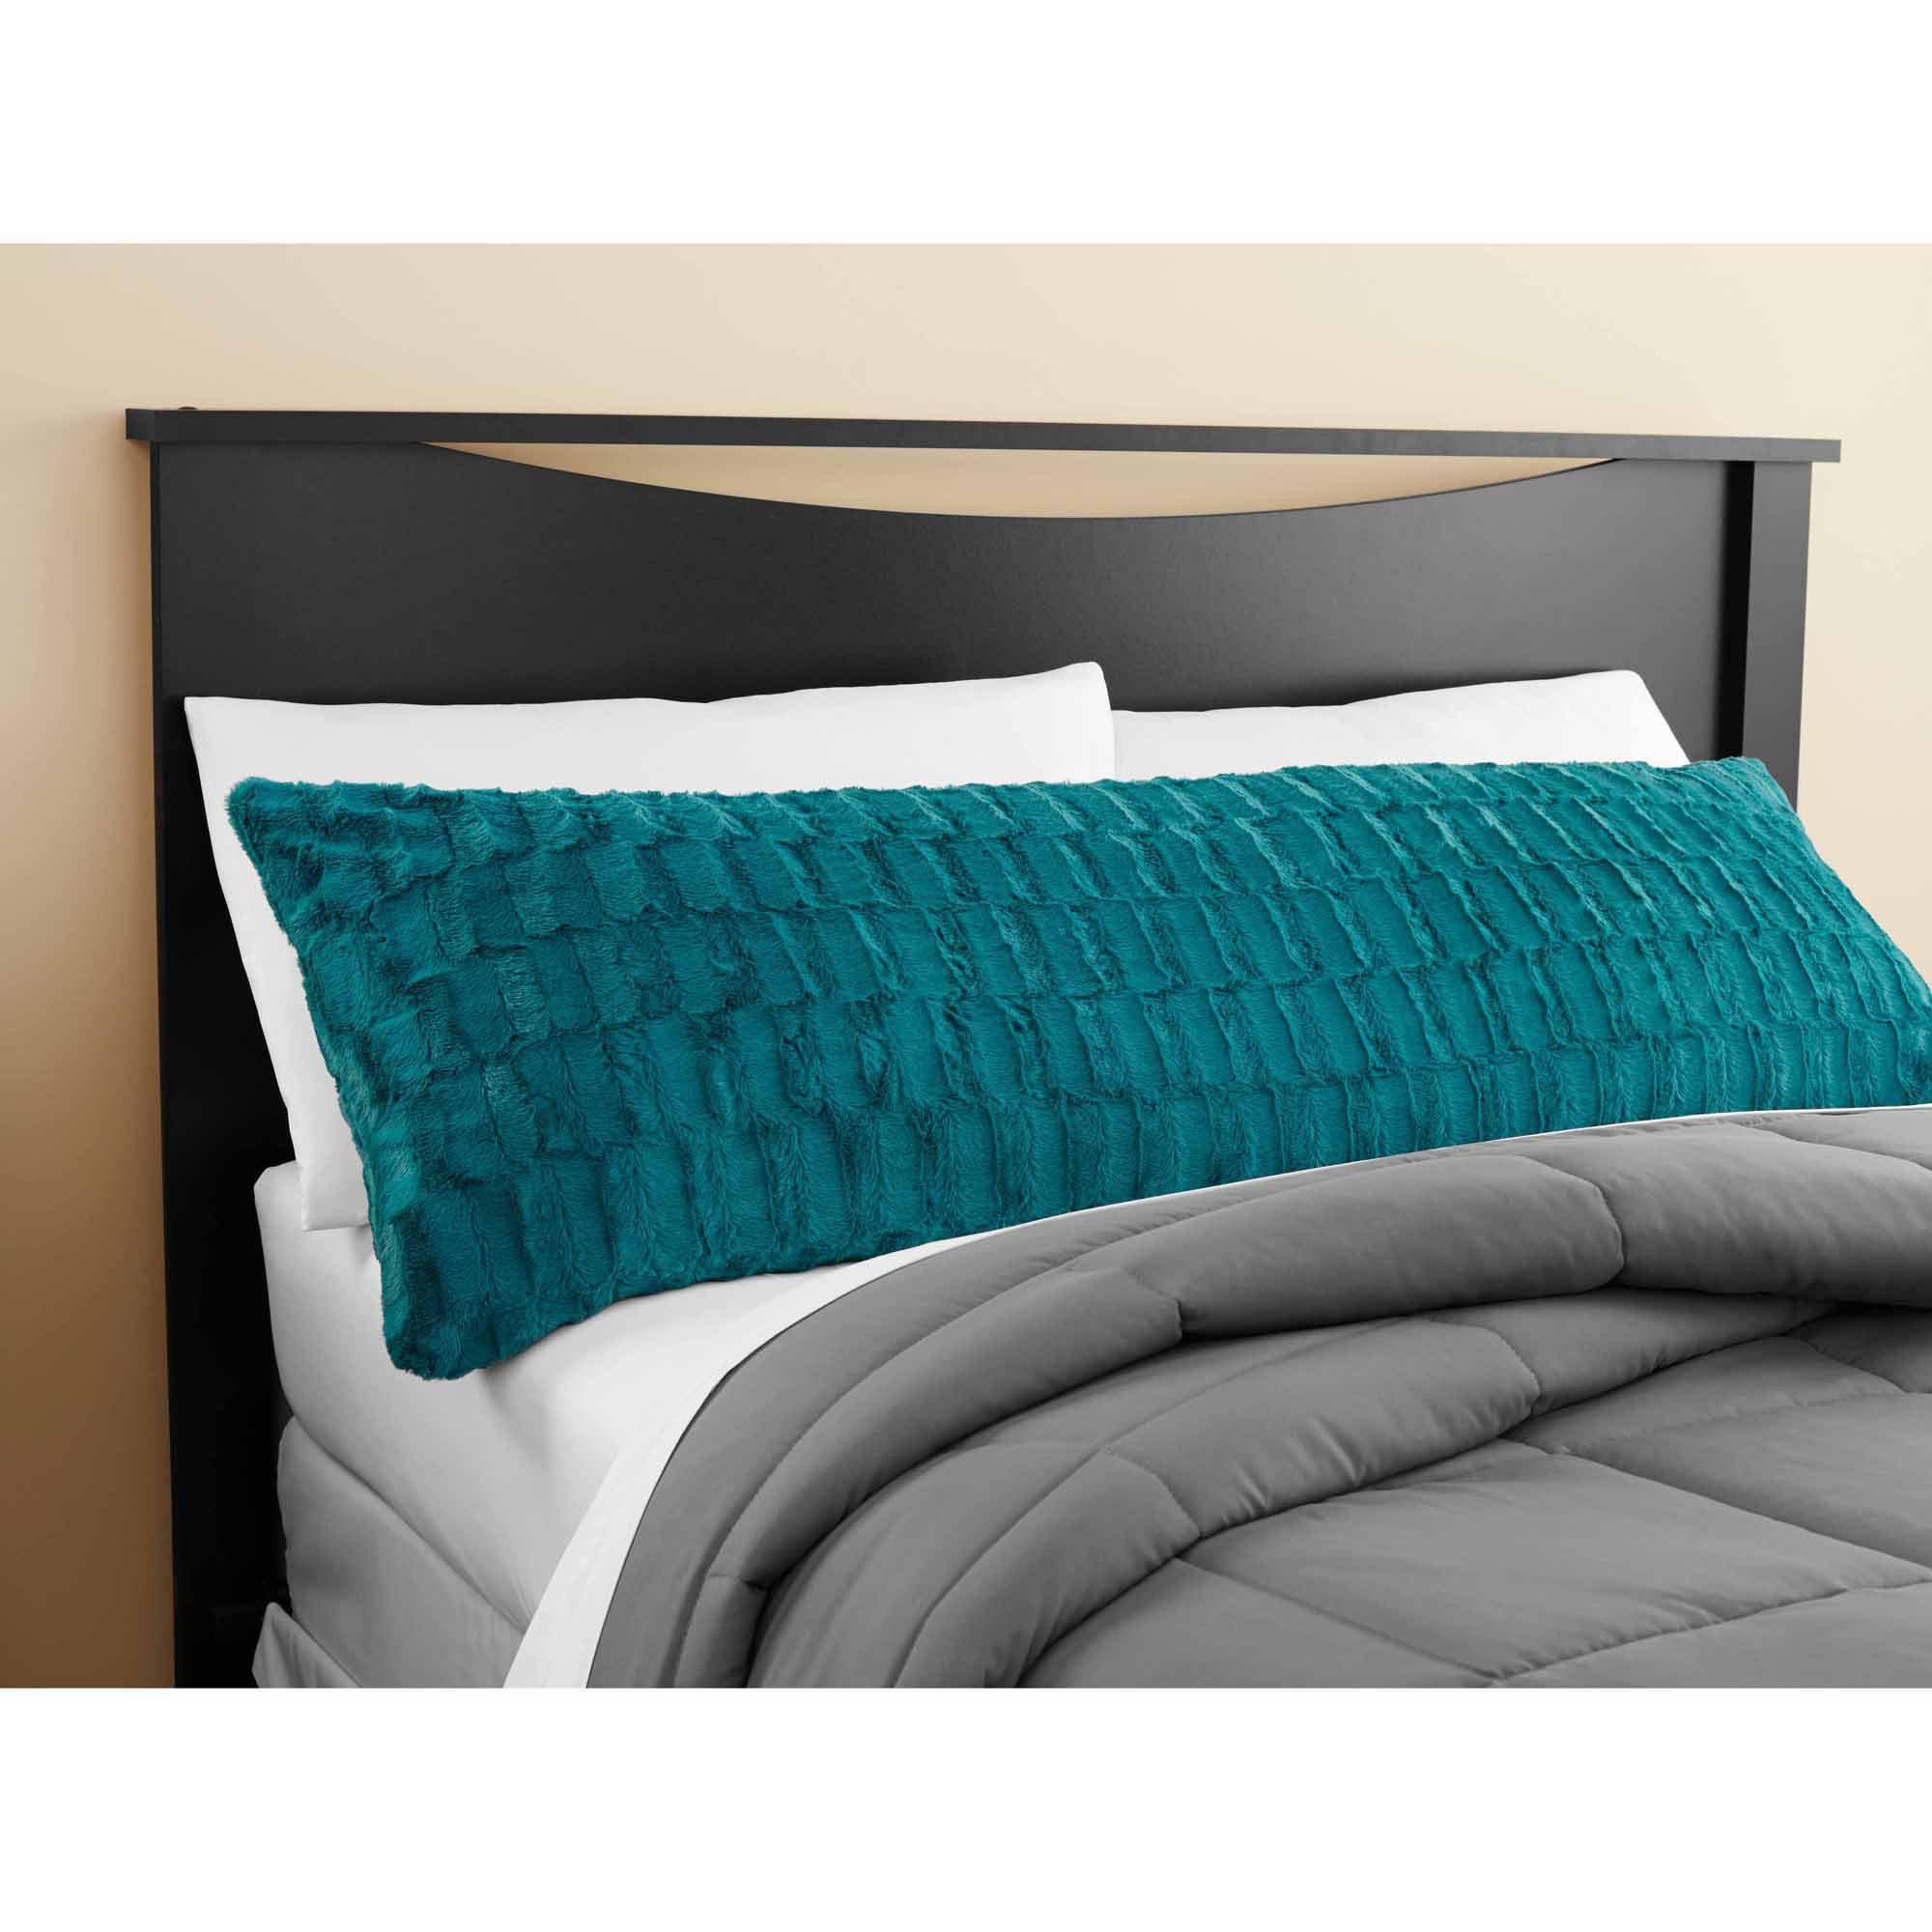 20 X 52 Fur Body Pillow Cover Case Teal Soft Sachet Bamboo Machine